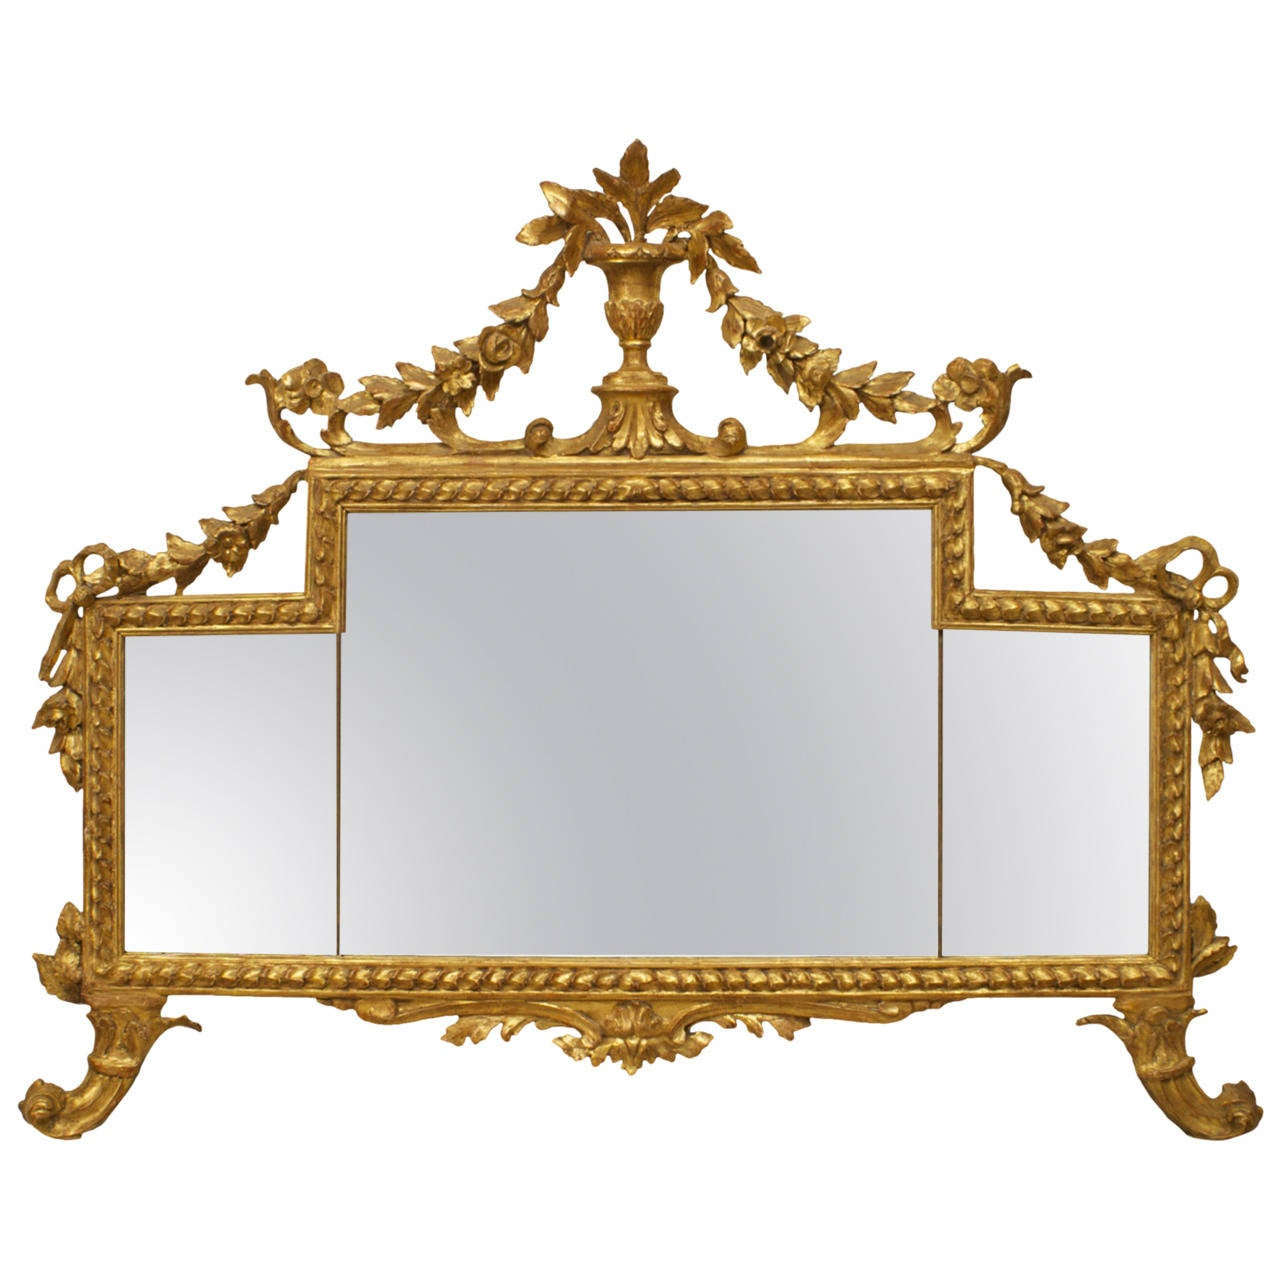 18th Century Italian Neoclassical Giltwood Mirror with Festoon Pediment